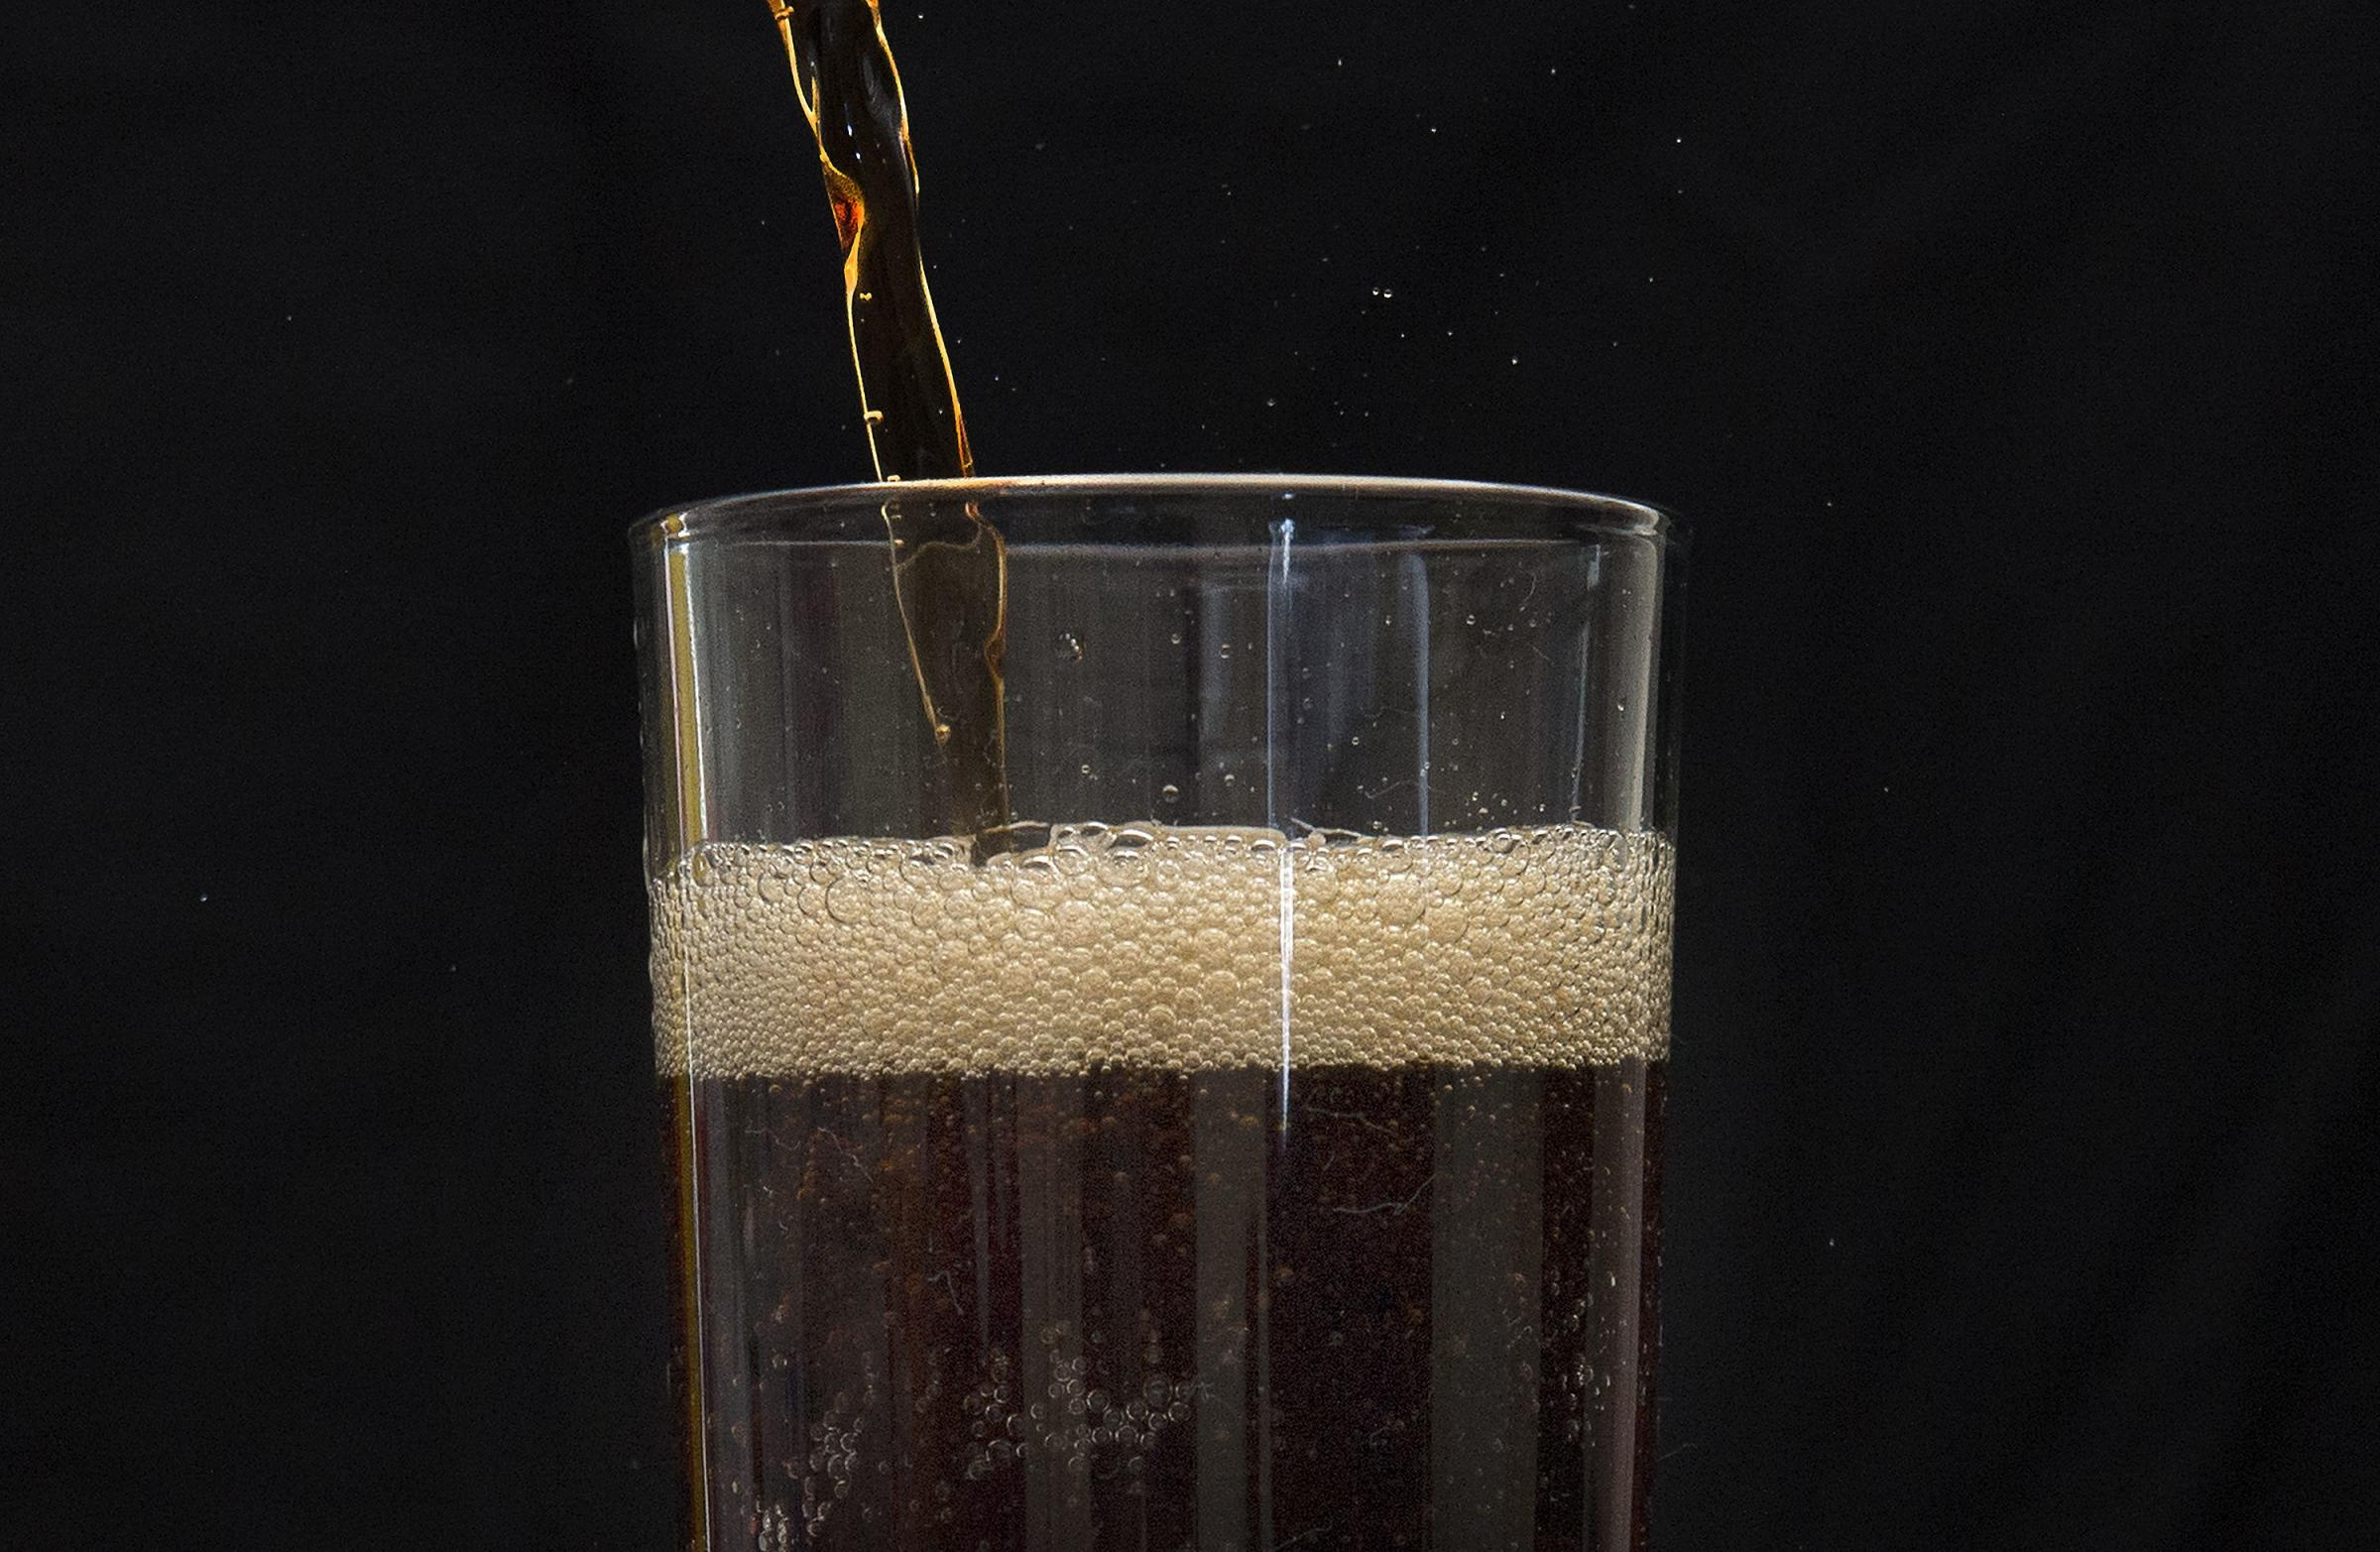 Diet drinks 'increase risk of stroke and heart disease'